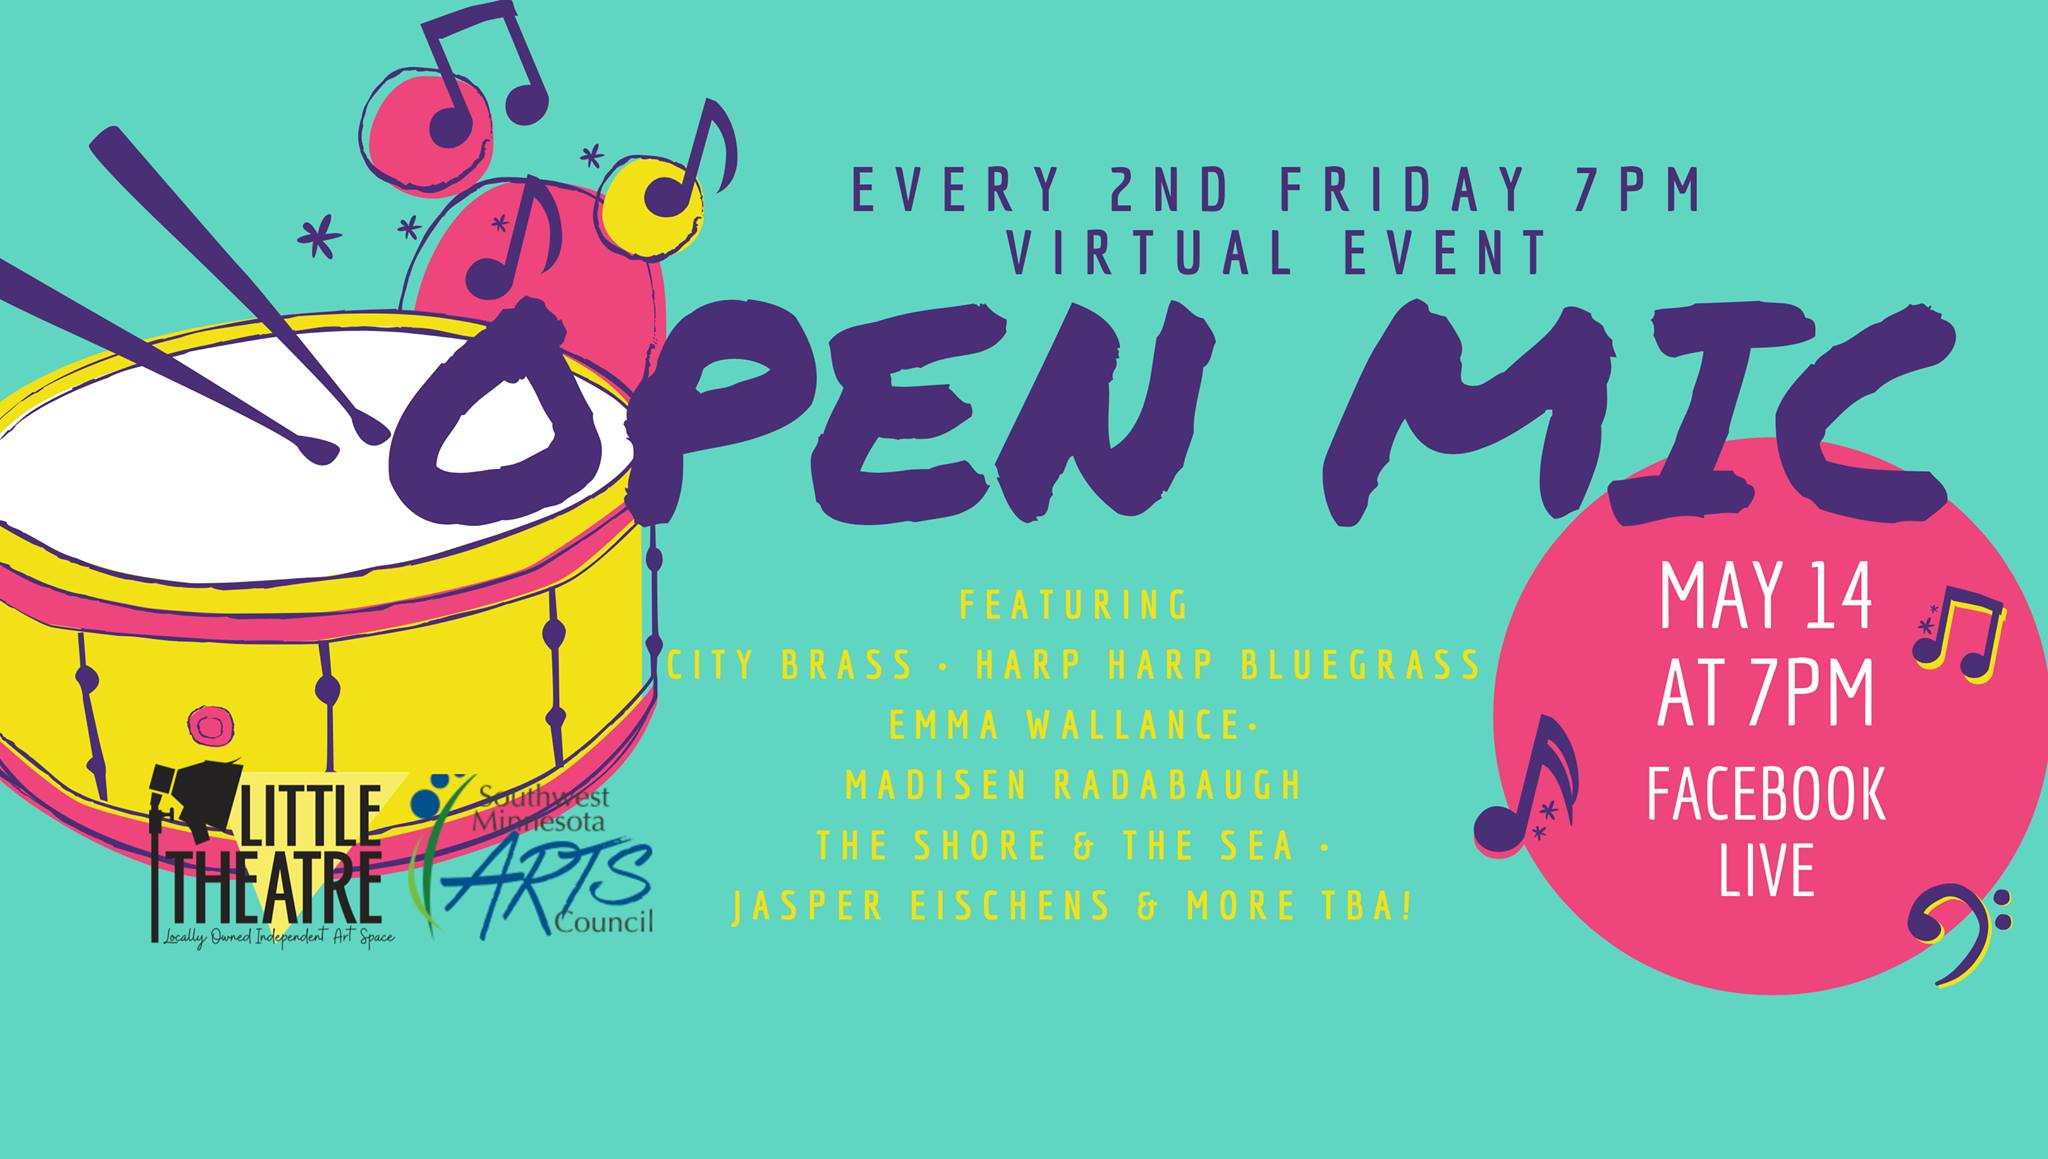 Every 2nd Friday 7 pm, Virtual Event. Open Mic. Featuring City Brass, Harp Harp Bluegrass, Emma Wallance, Madisen Radabaugh, The Shore & the Sea, Jasper Eischens & More TBA! May 14 at 7 pm, Facebook Live.